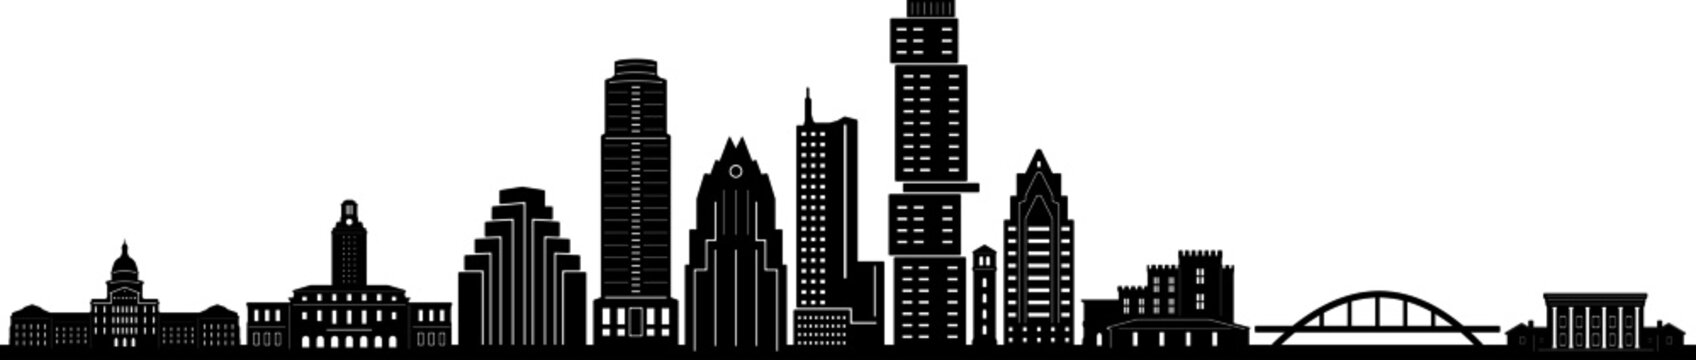 AUSTIN Texas SKYLINE City Outline Silhouette